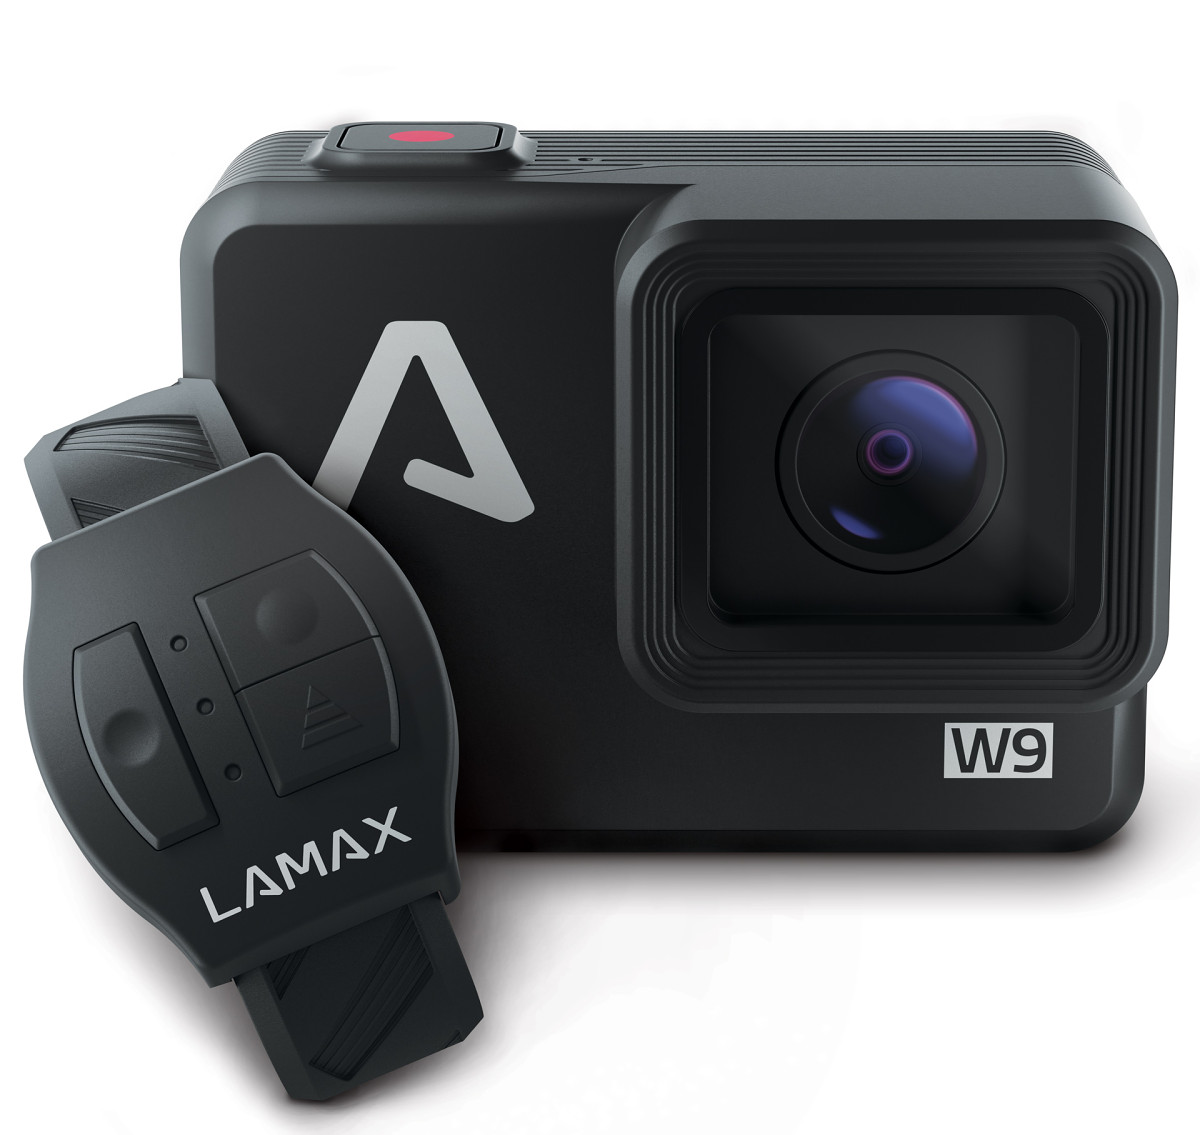 LAMAX W9 – Dive into the action